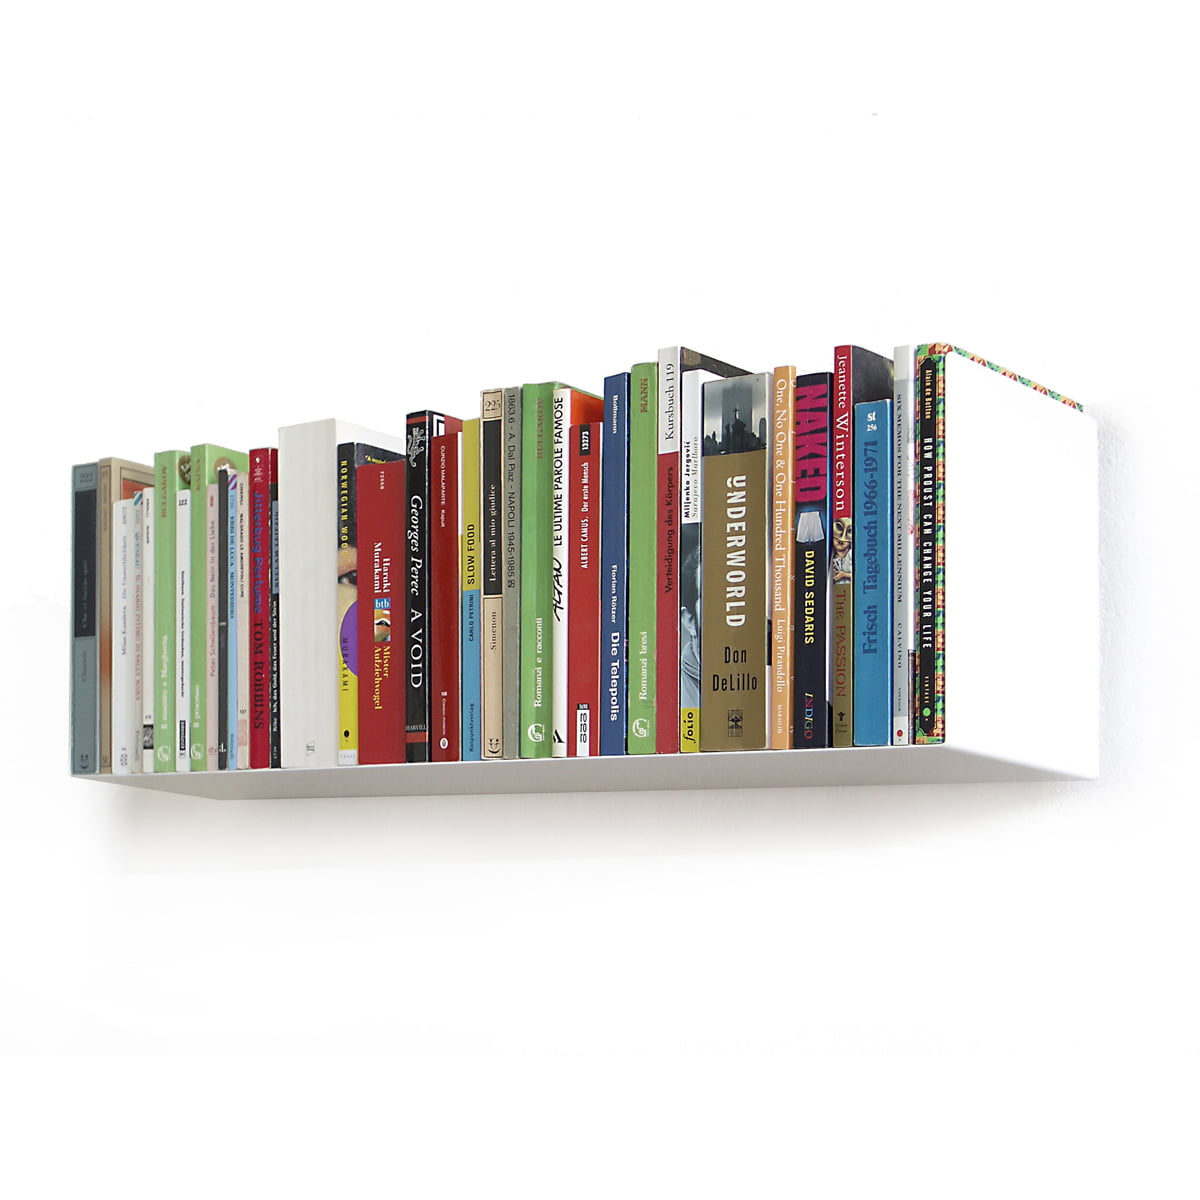 Awe Inspiring Linea1 Paperback And Dvd Shelf White Download Free Architecture Designs Embacsunscenecom